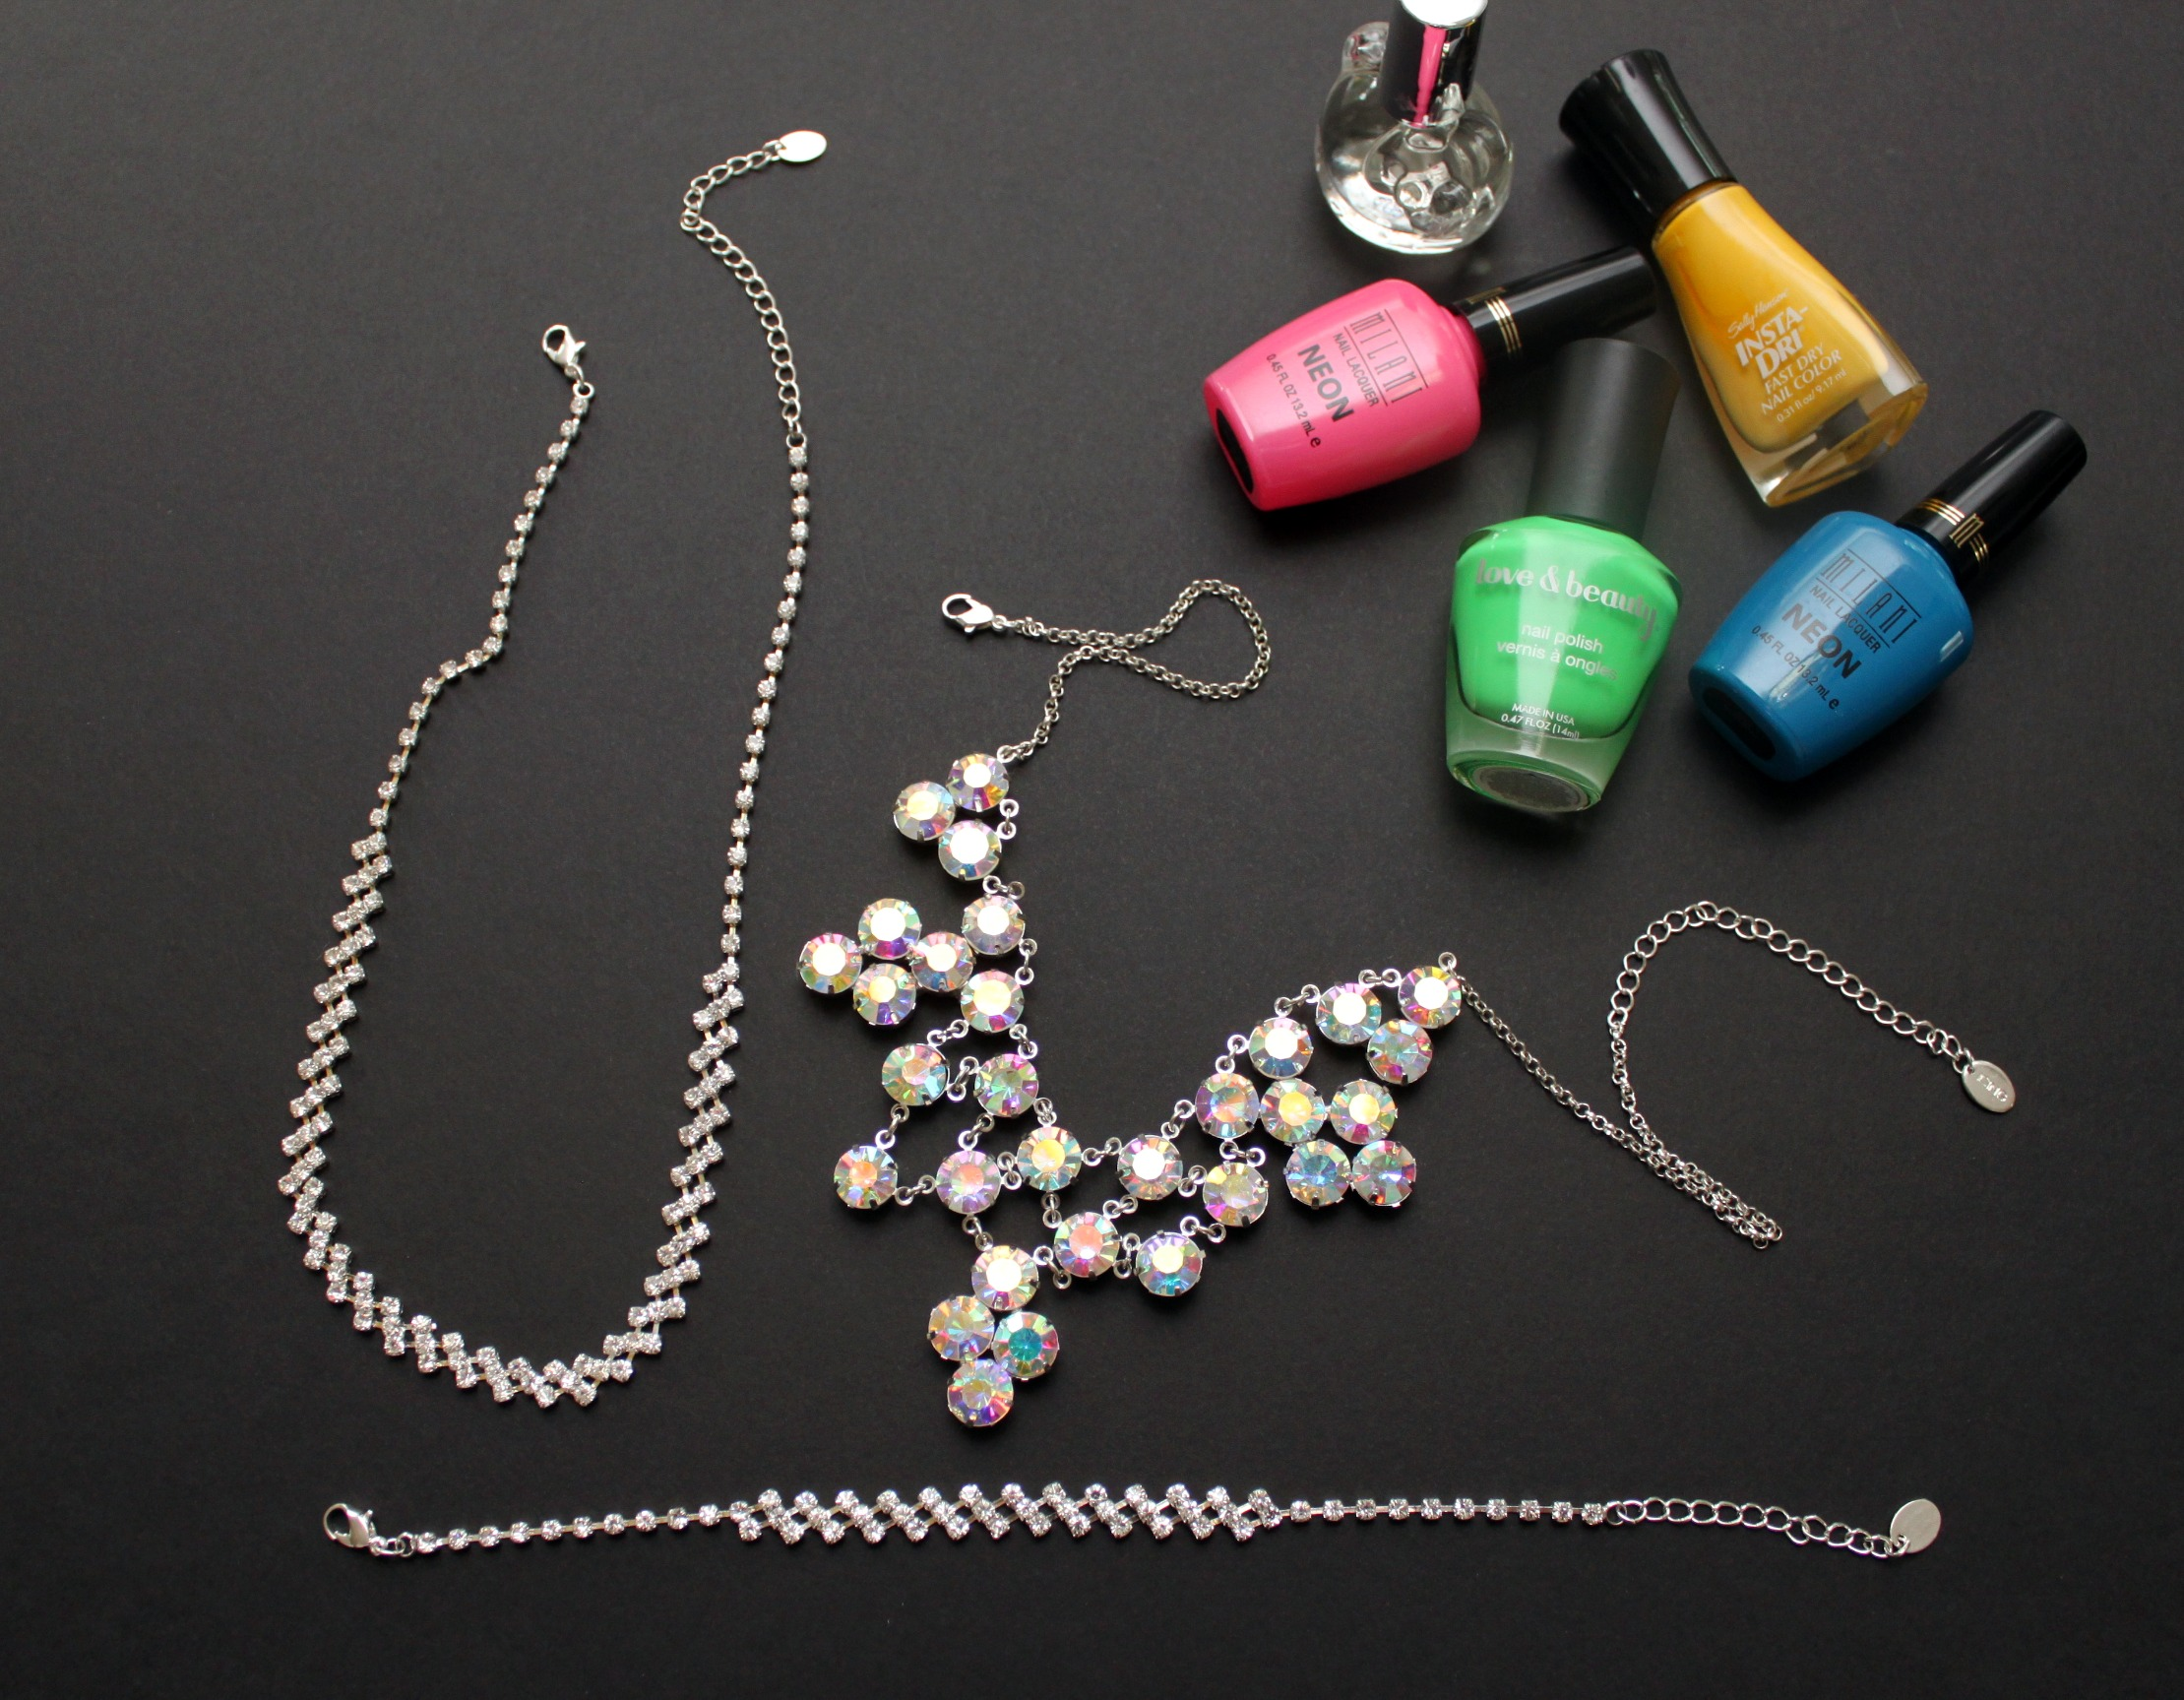 knit a to diy how necklace cnecklace or crochet necklaces projects tutorial